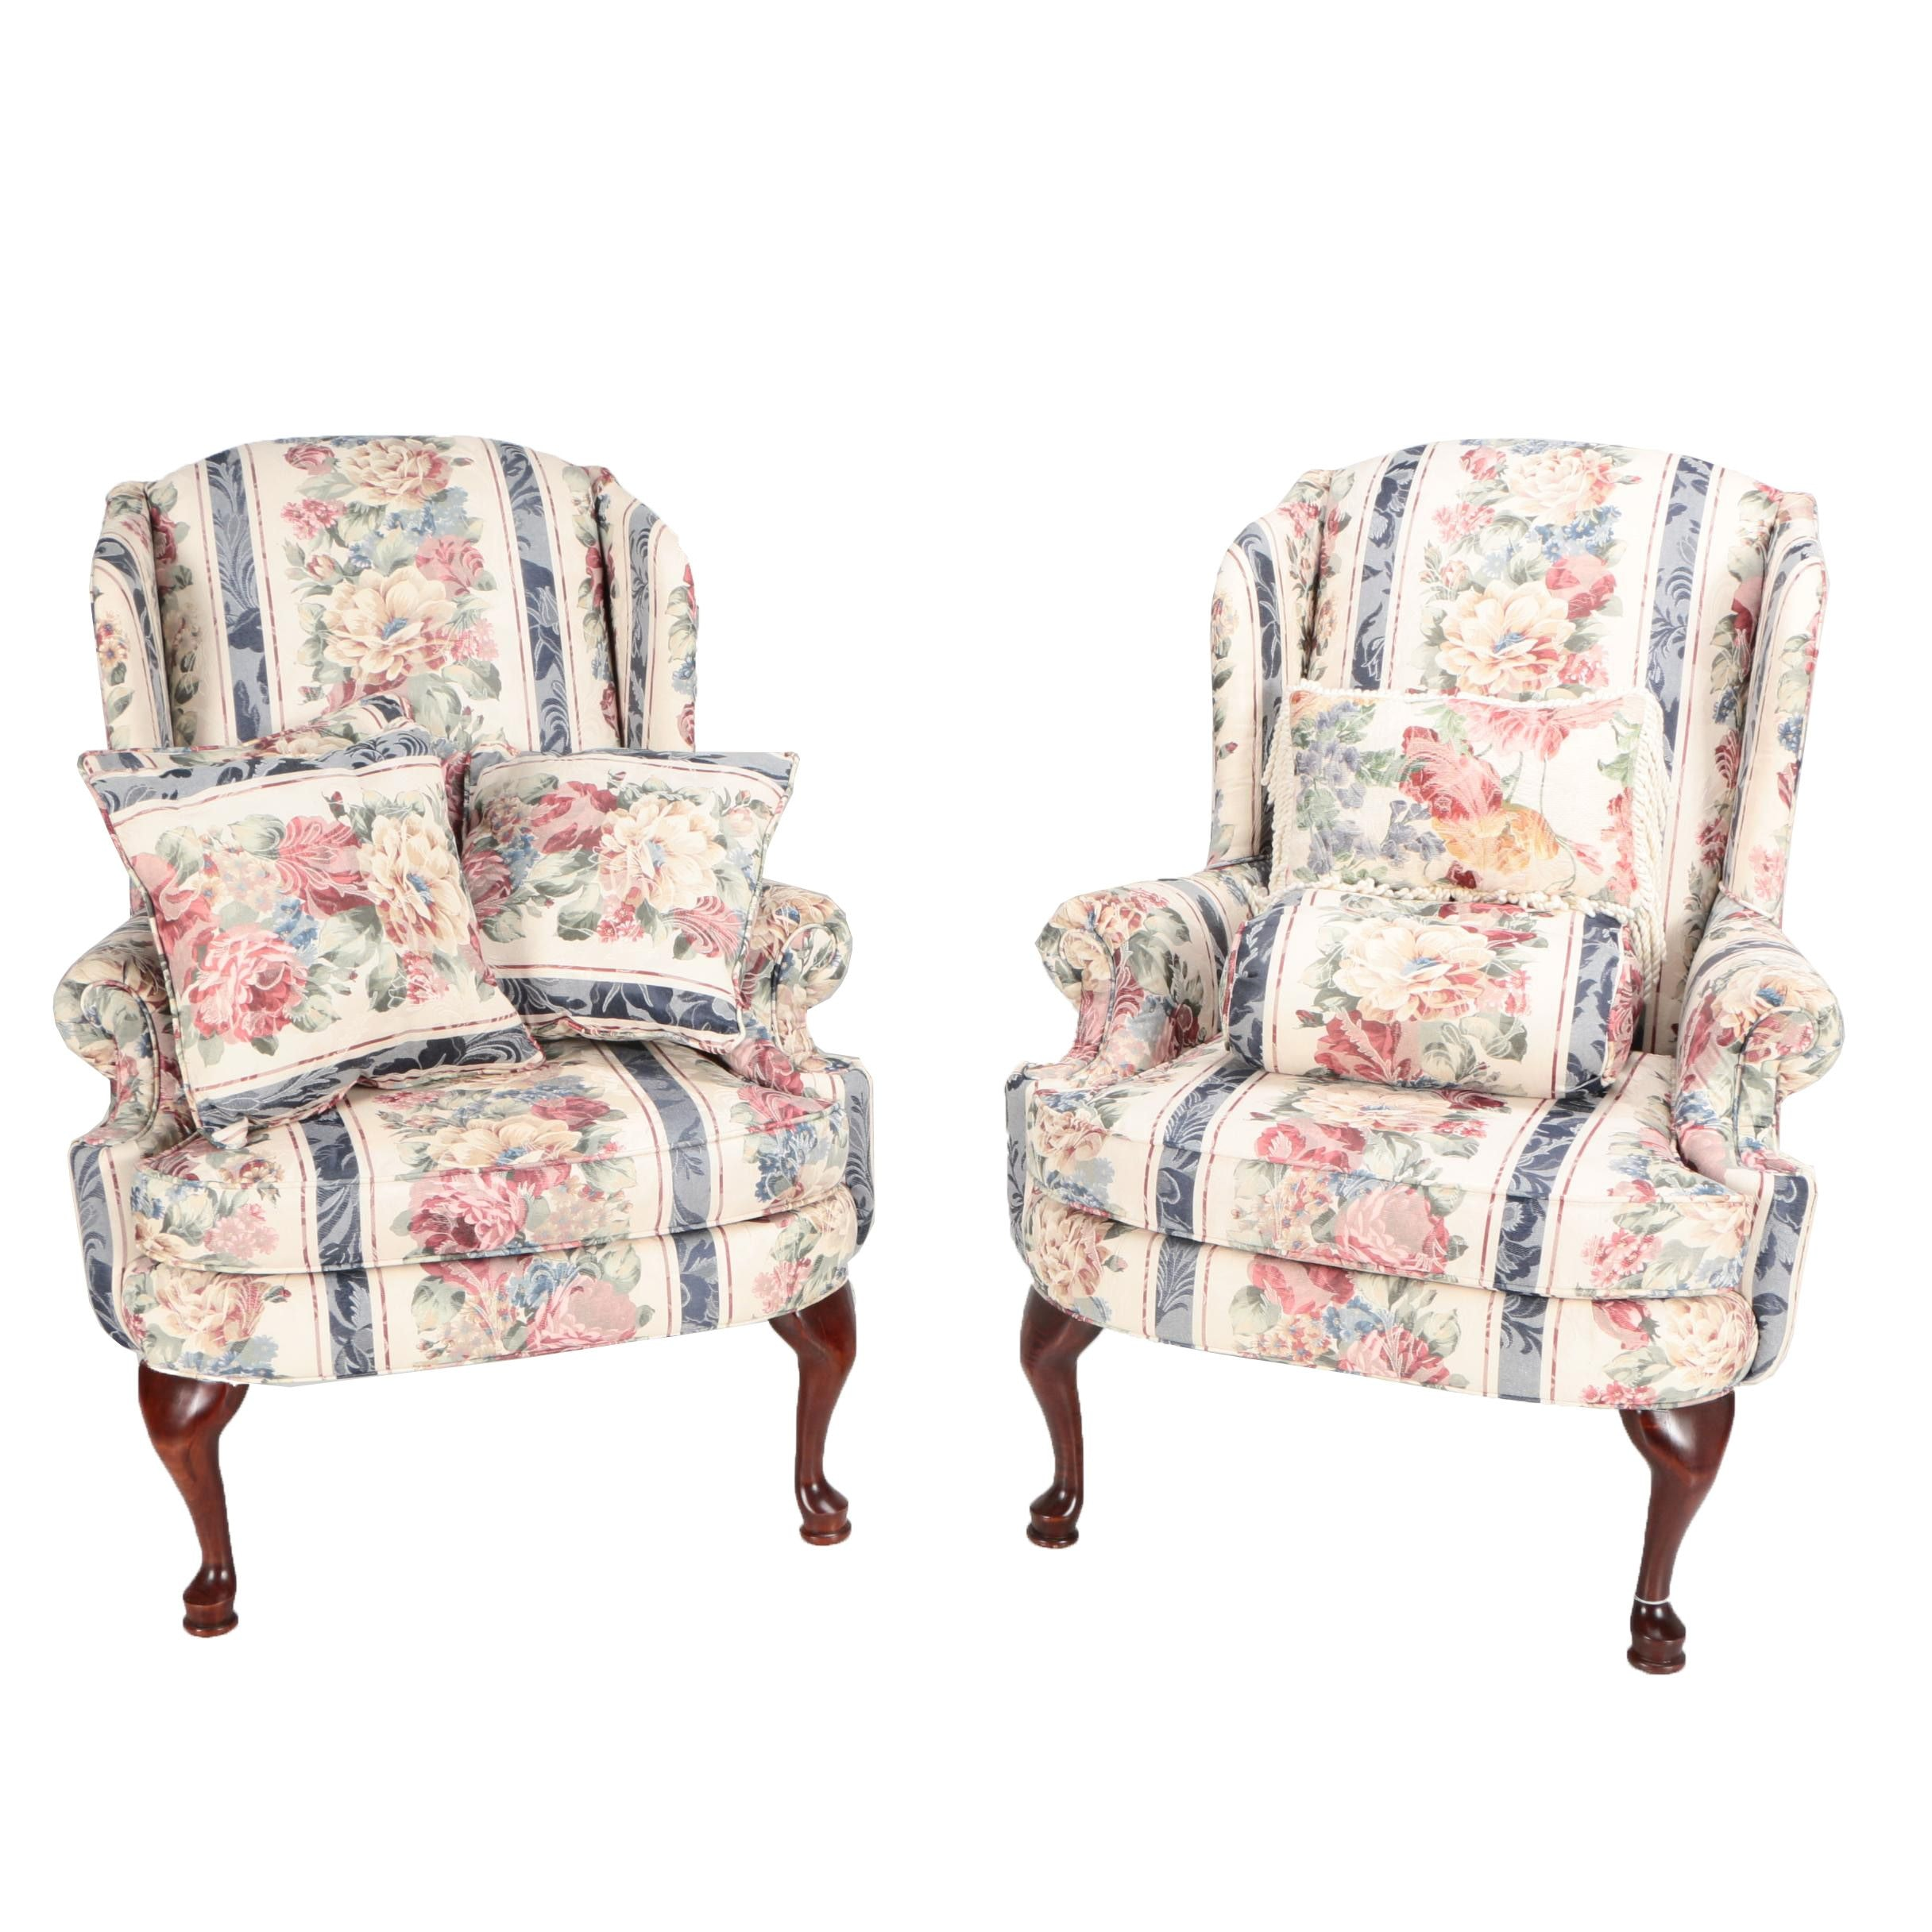 Queen Anne Style Upholstered Wingback Armchairs by Broyhill